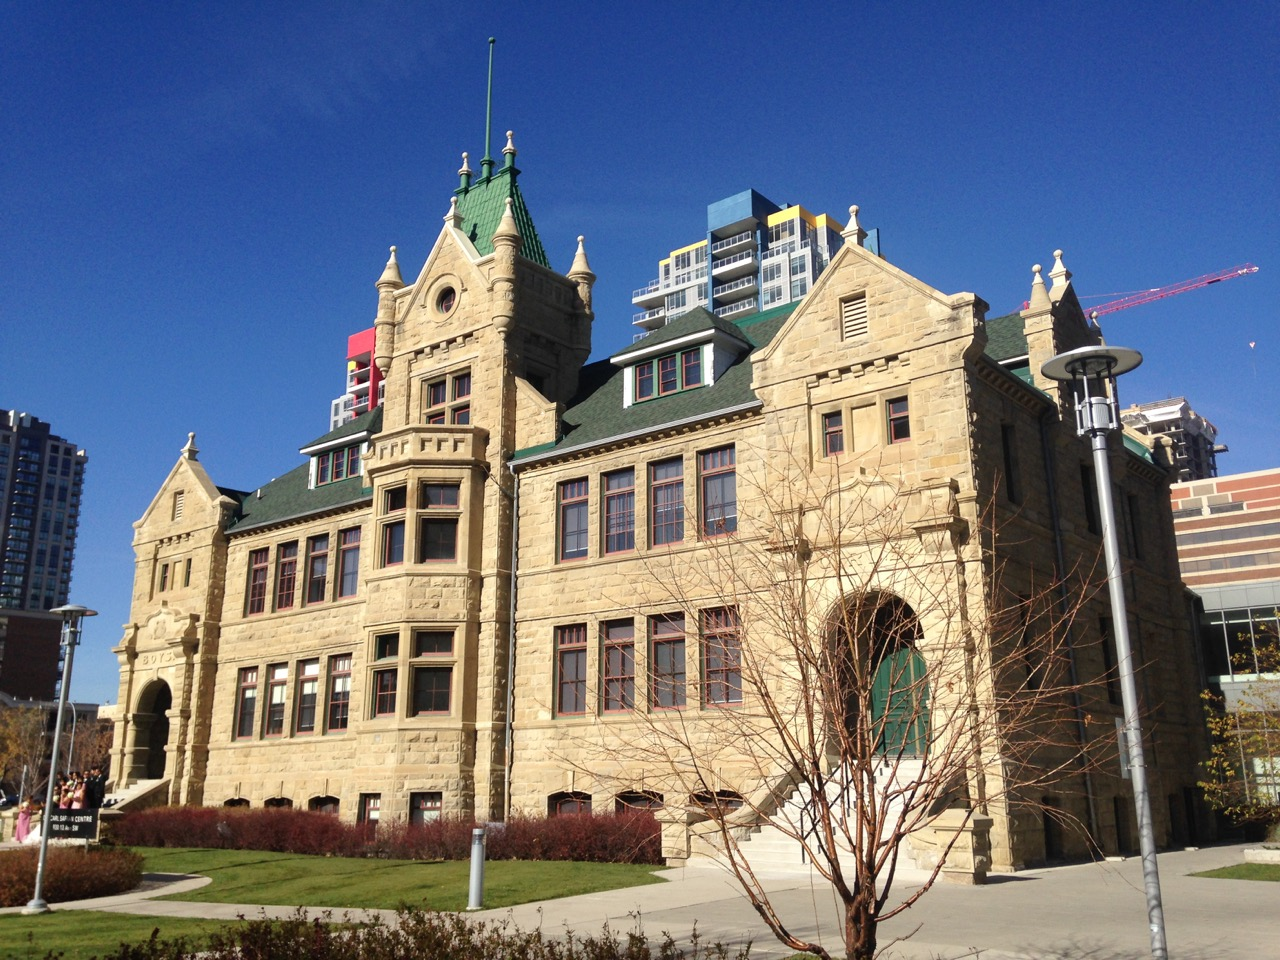 Calgary is known as the Sandstone City, the Collegiate Institute built in 1908 is just one of many elegant sandstone buildings from the early 20th century.